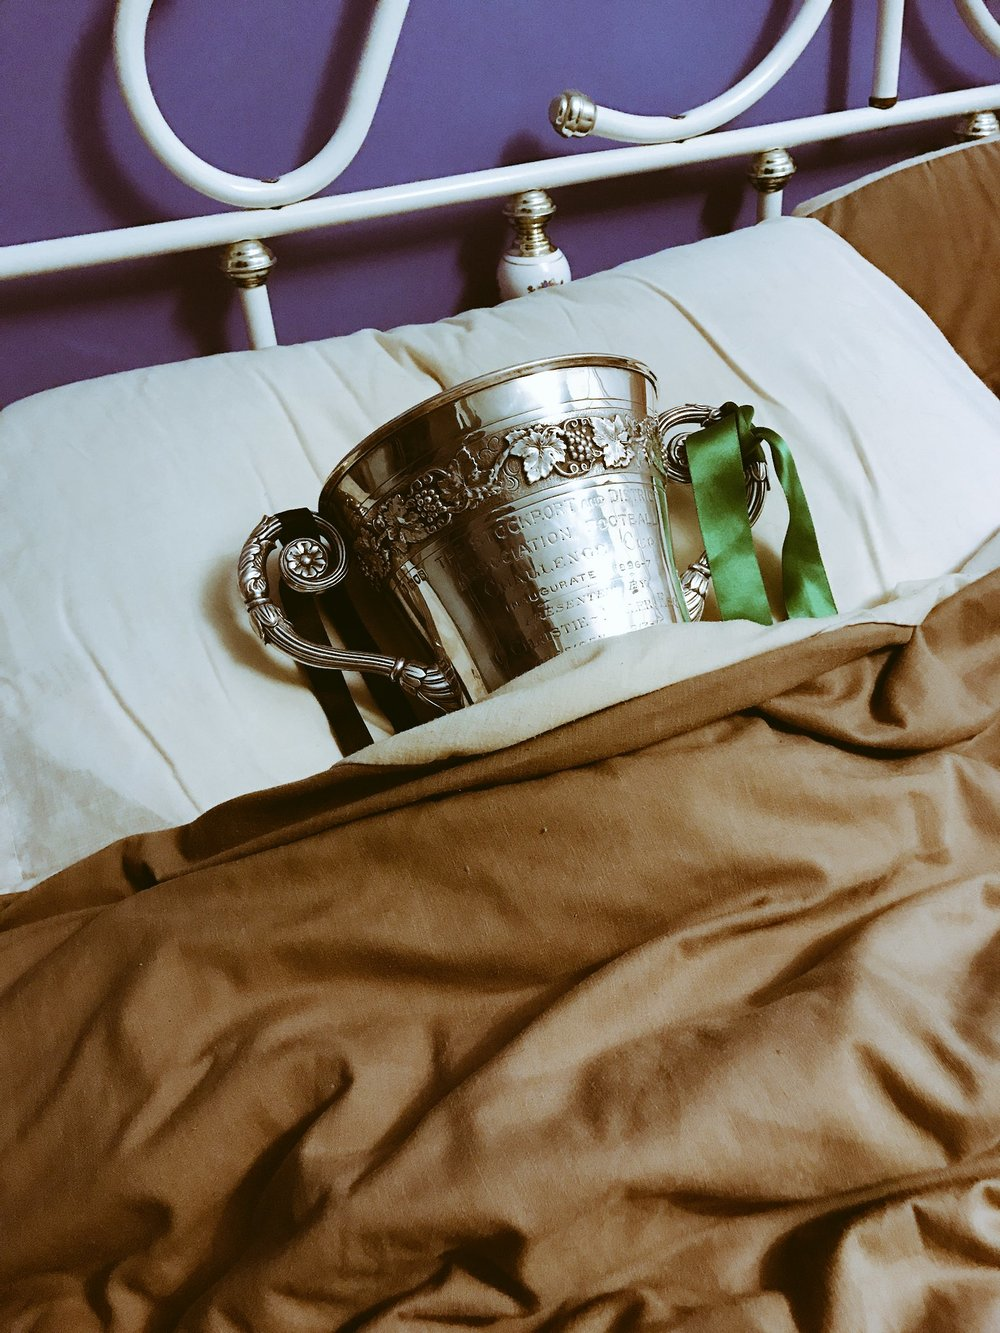 The Stockport DFA Cup: all tucked up...and ours back in May